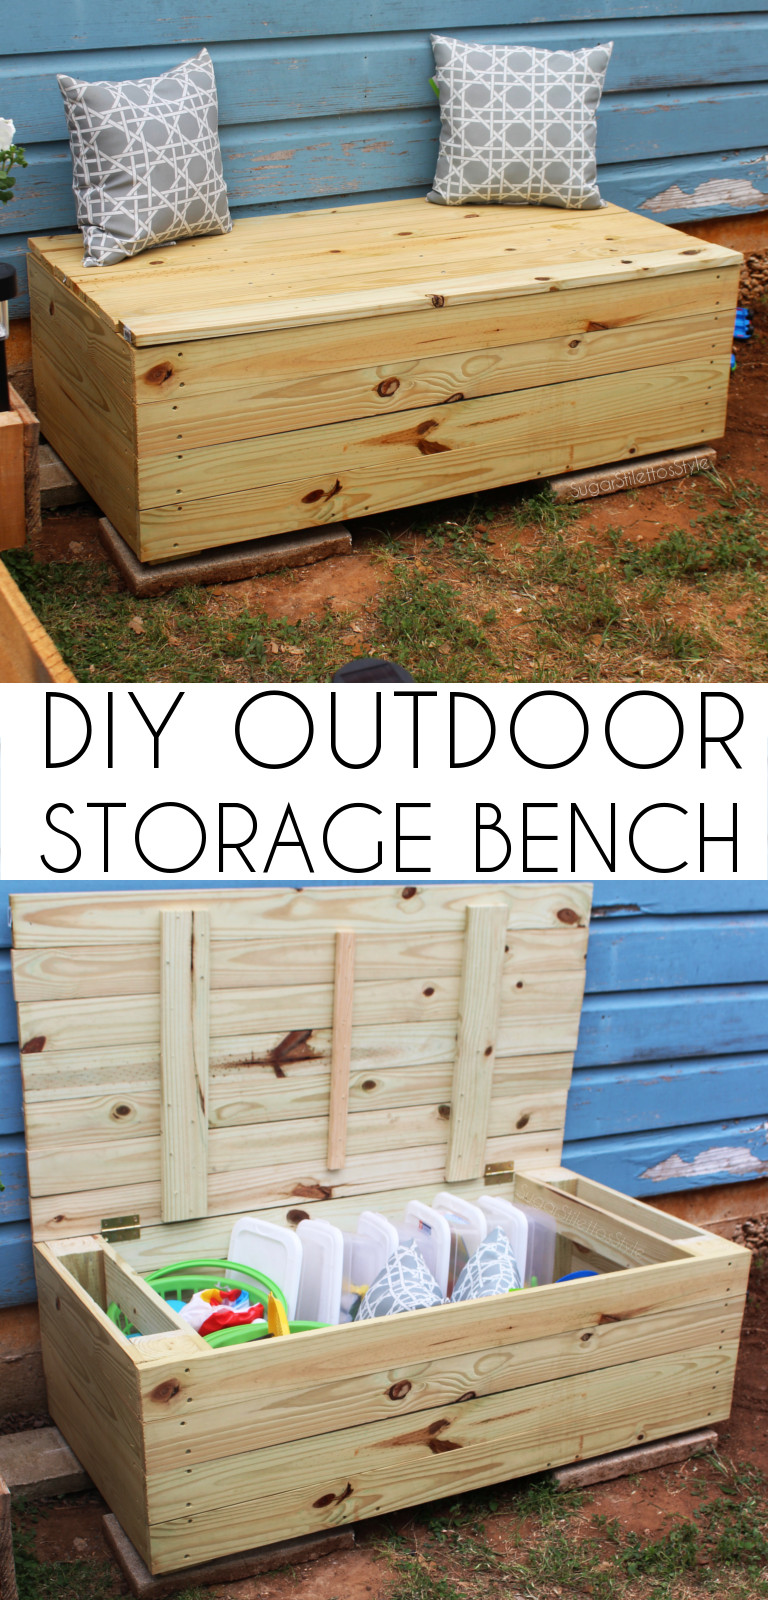 Best ideas about DIY Deck Box . Save or Pin DIY Outdoor Storage Bench Outdoor Toy Box Now.